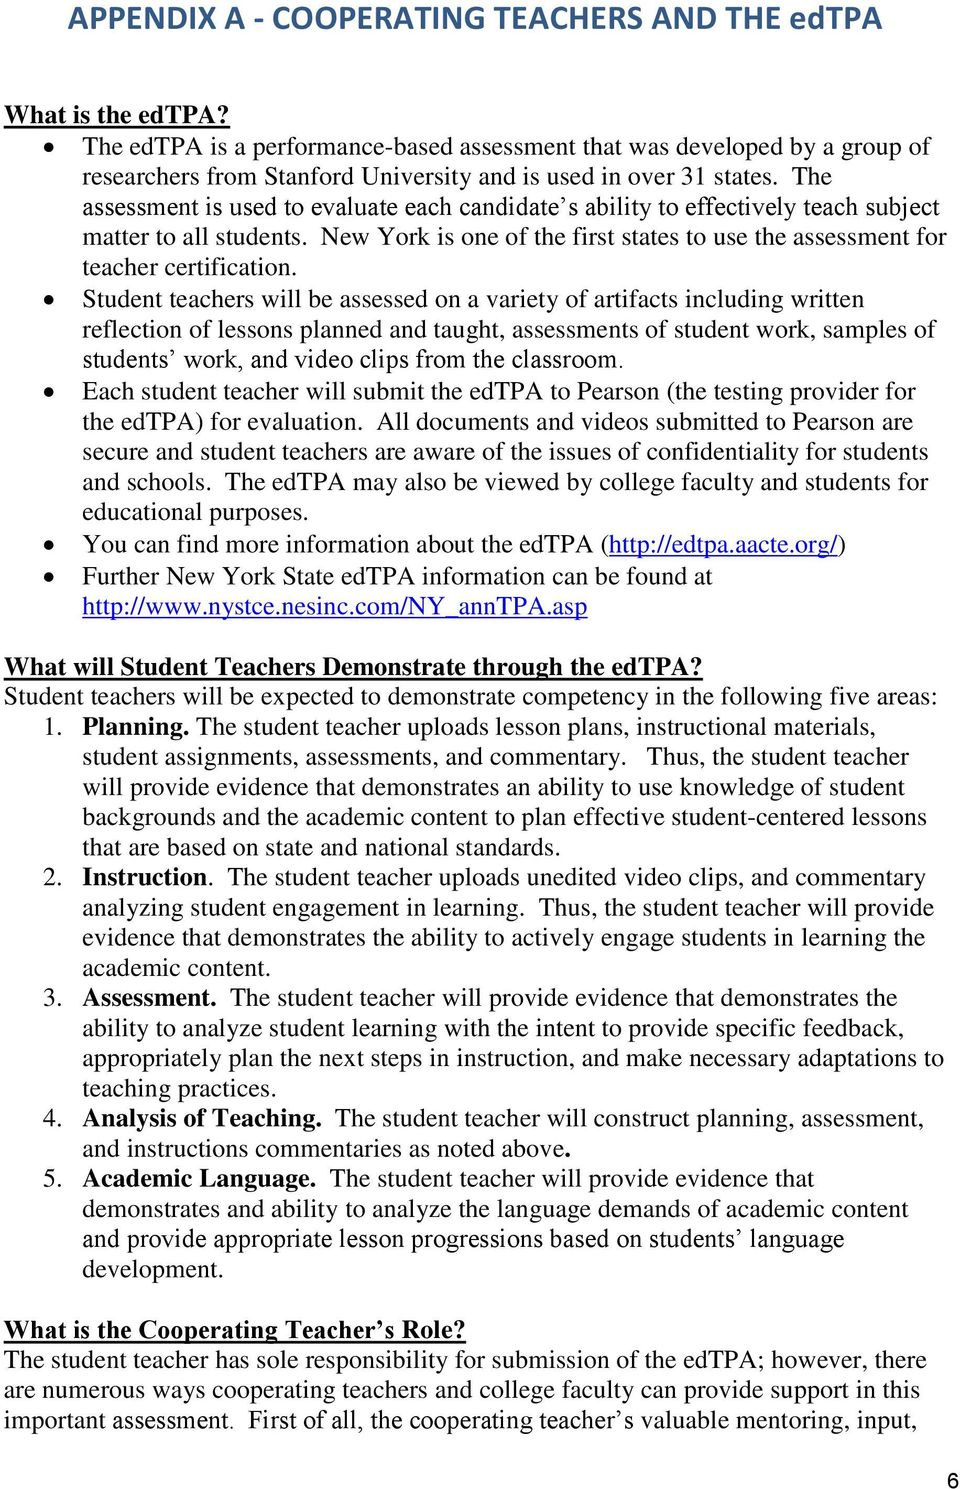 The assessment is used to evaluate each candidate s ability to effectively teach subject matter to all students. New York is one of the first states to use the assessment for teacher certification.